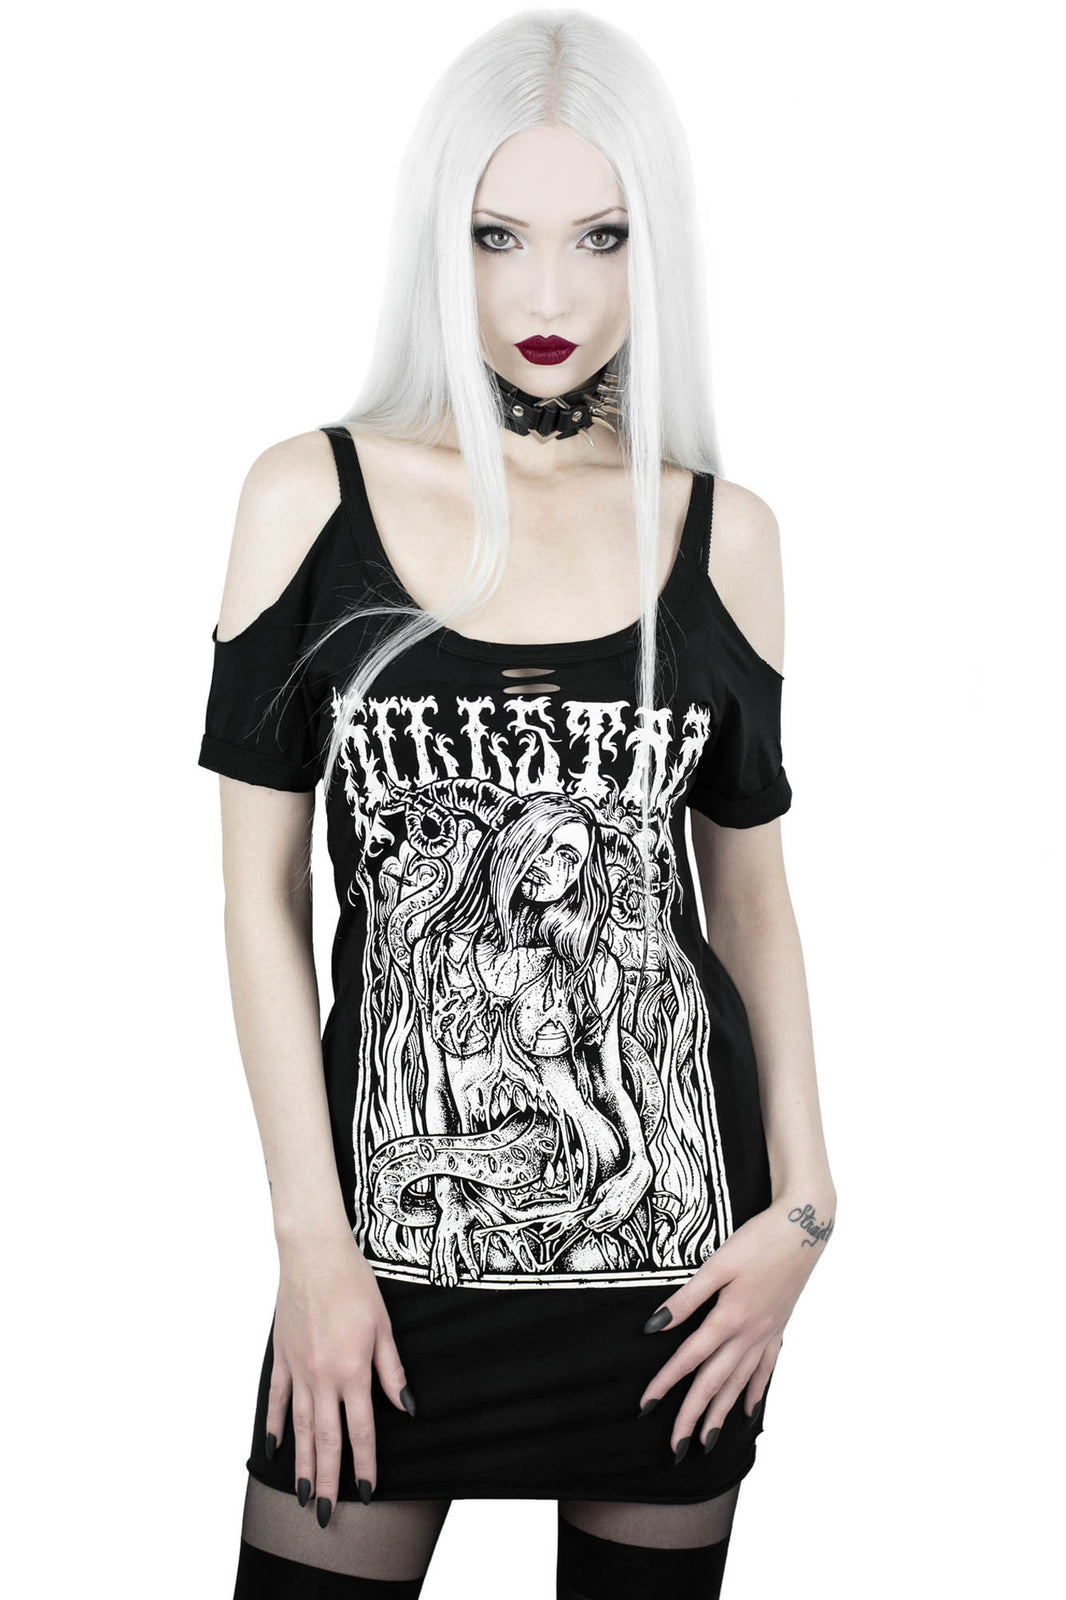 Gory Distressed Top